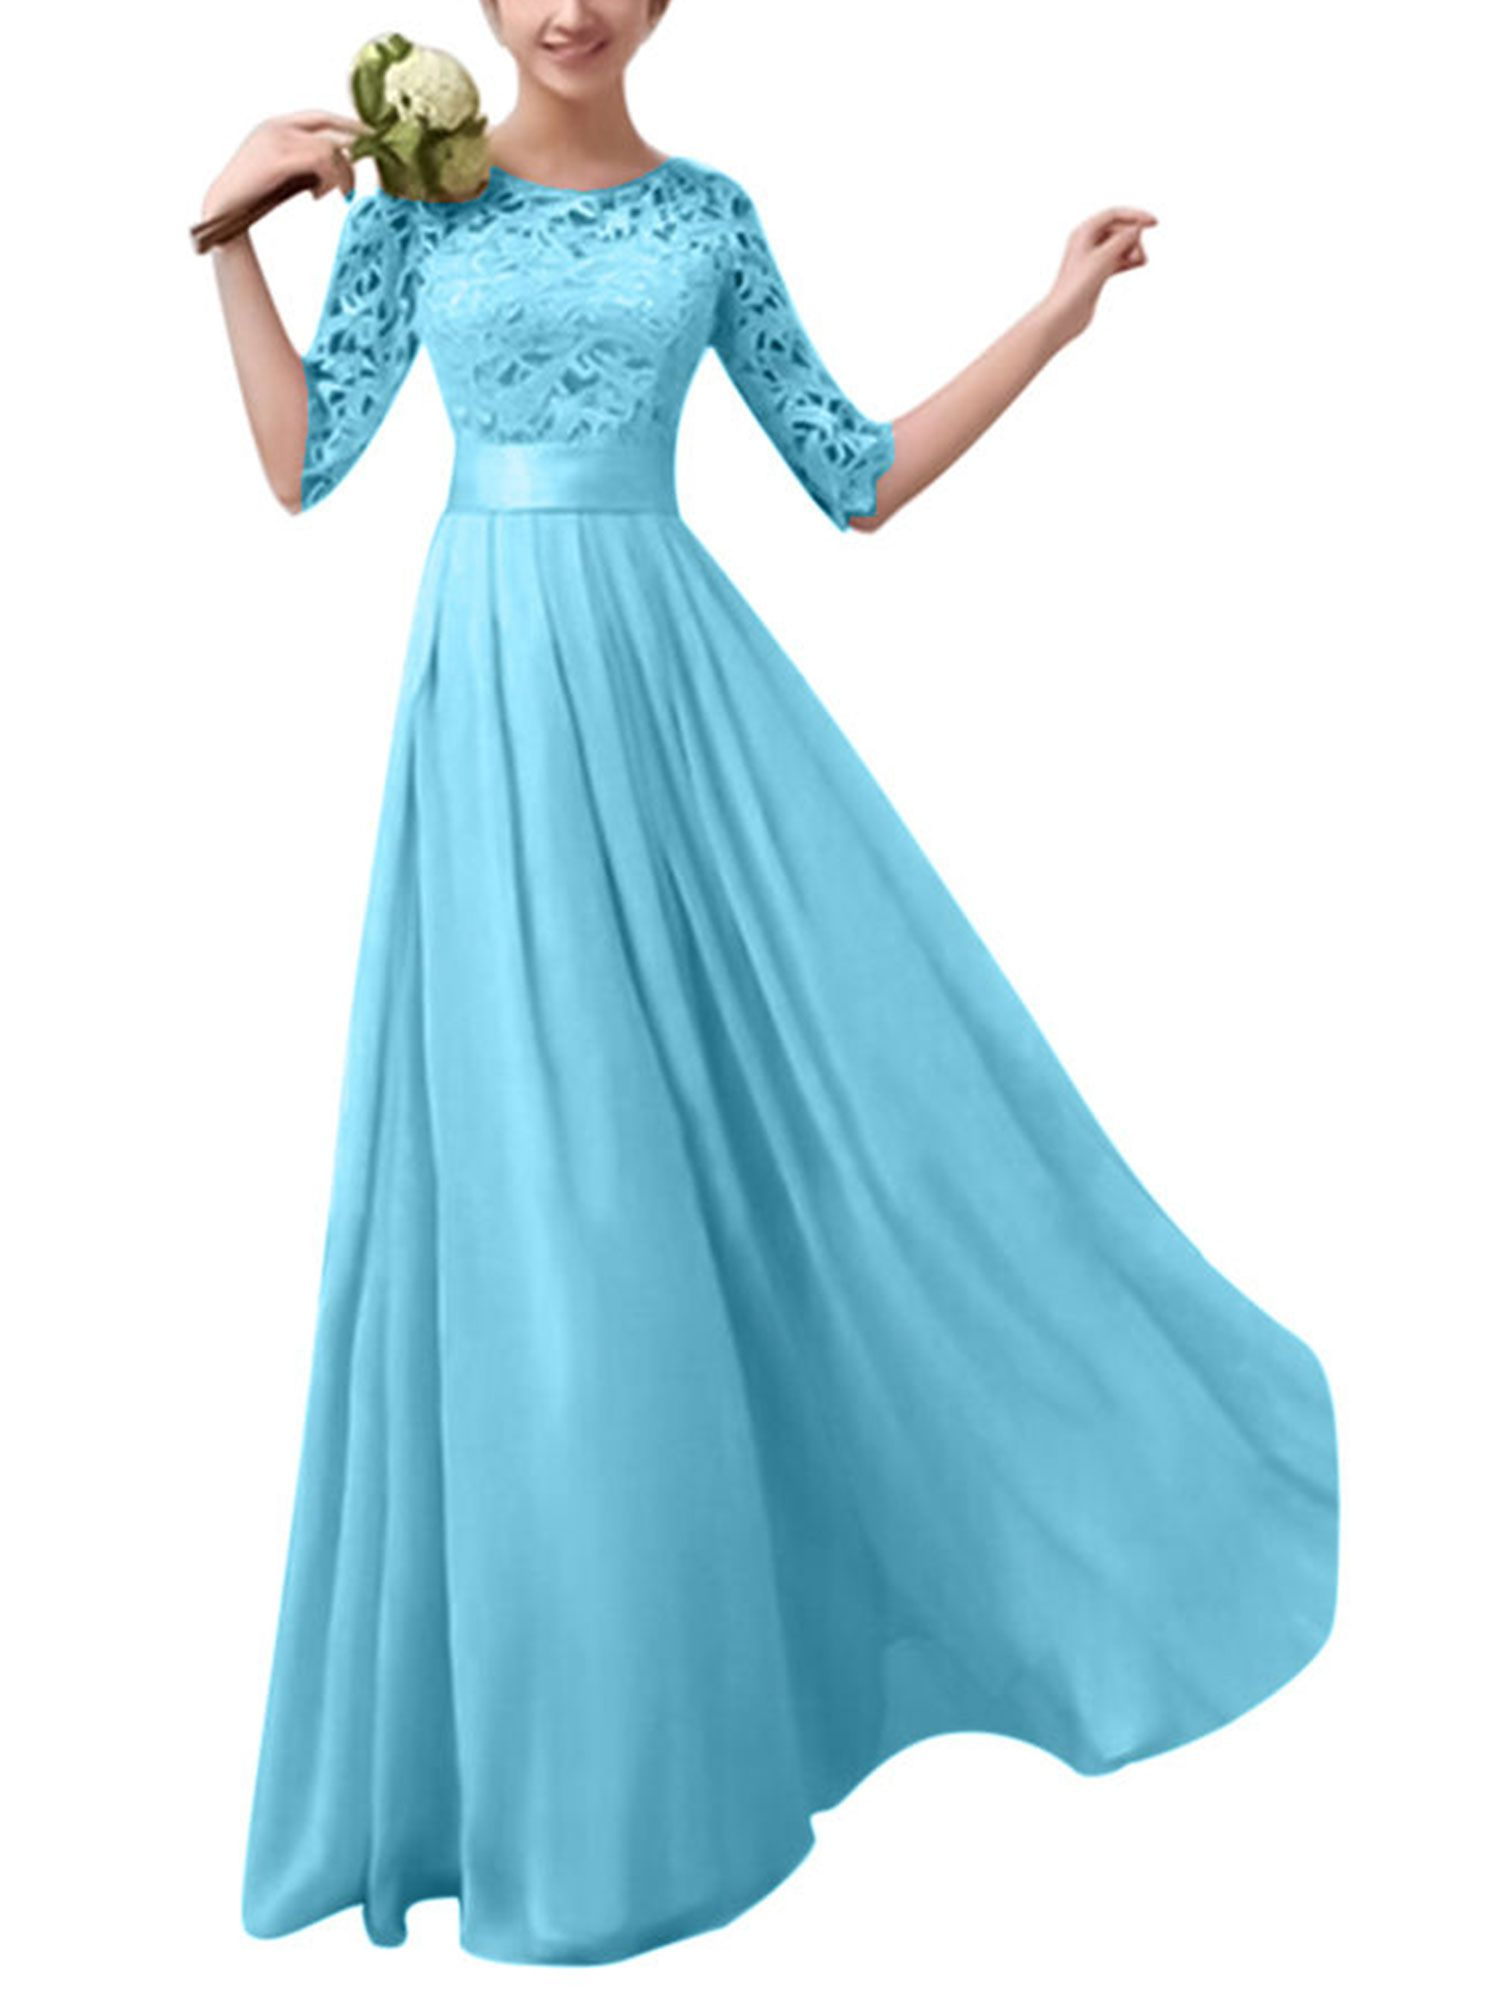 Ladies Lace Long Formal Party Evening Prom Ball Gowns Wedding Bridesmaid Dress